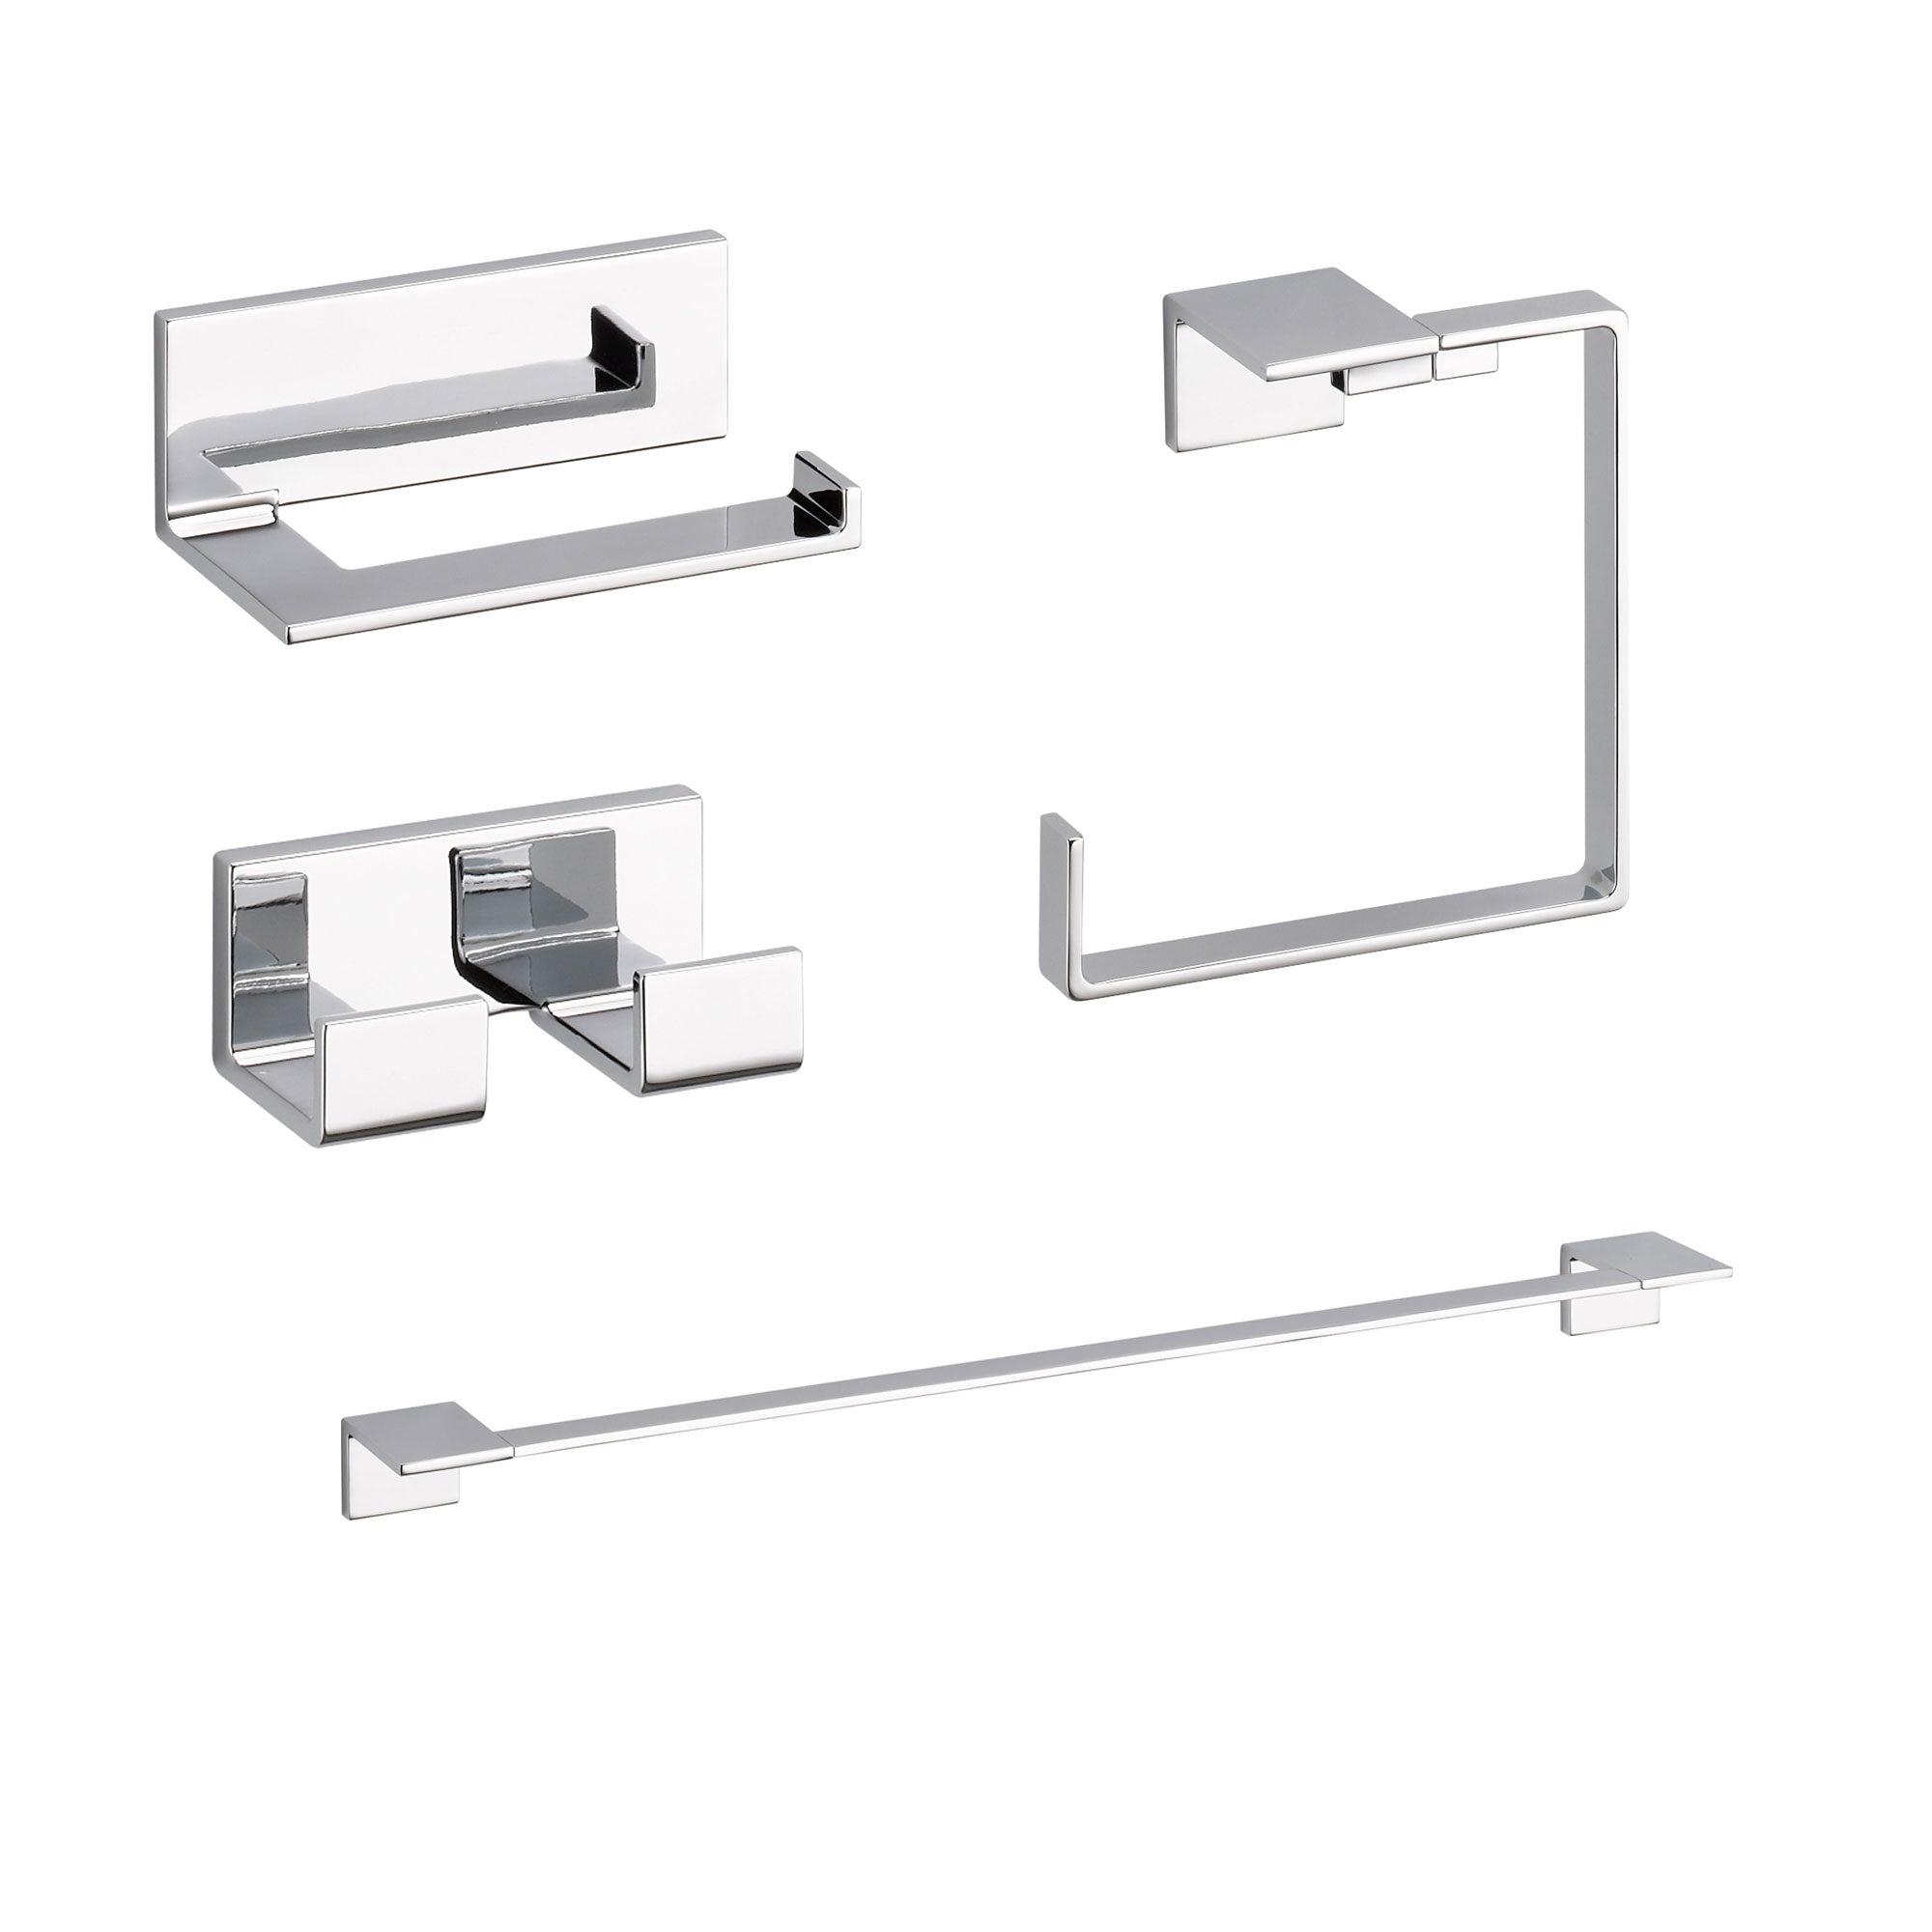 "Delta Vero Chrome STANDARD Bathroom Accessory Set Includes: 24"" Towel Bar, Toilet Paper Holder, Double Robe Hook, and Towel Ring D10055AP"